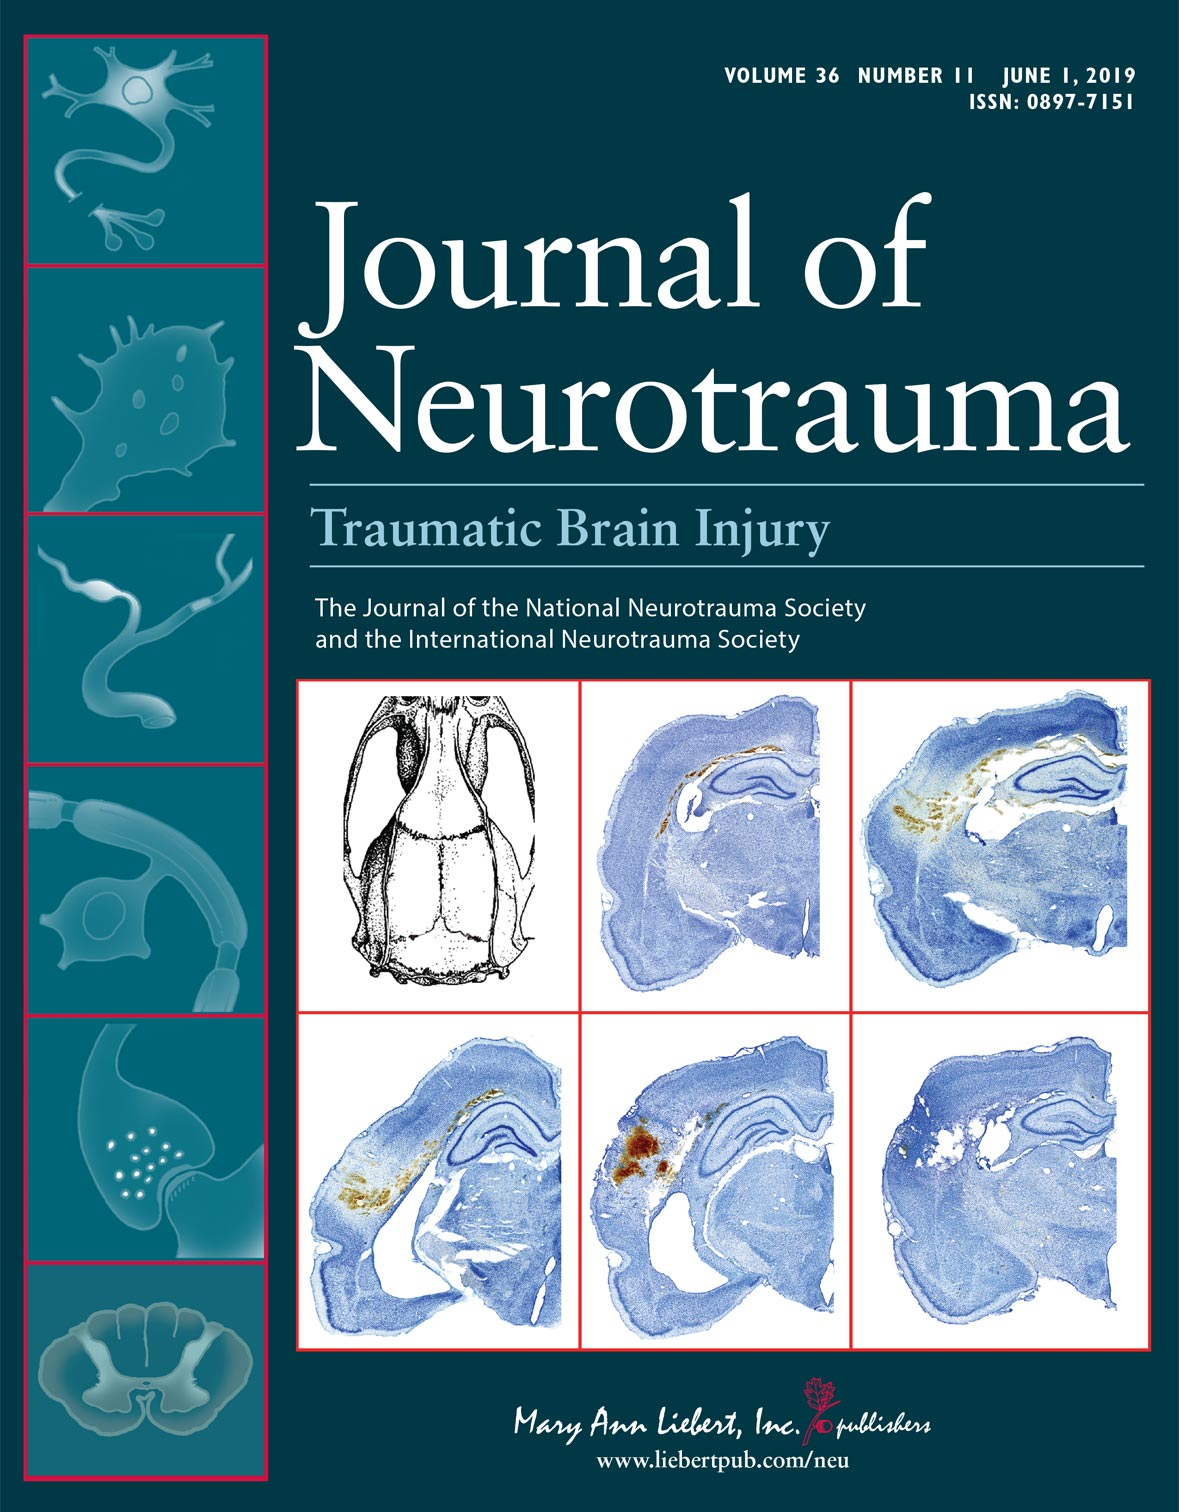 Recovery from Mild Traumatic Brain Injury in Previously Healthy